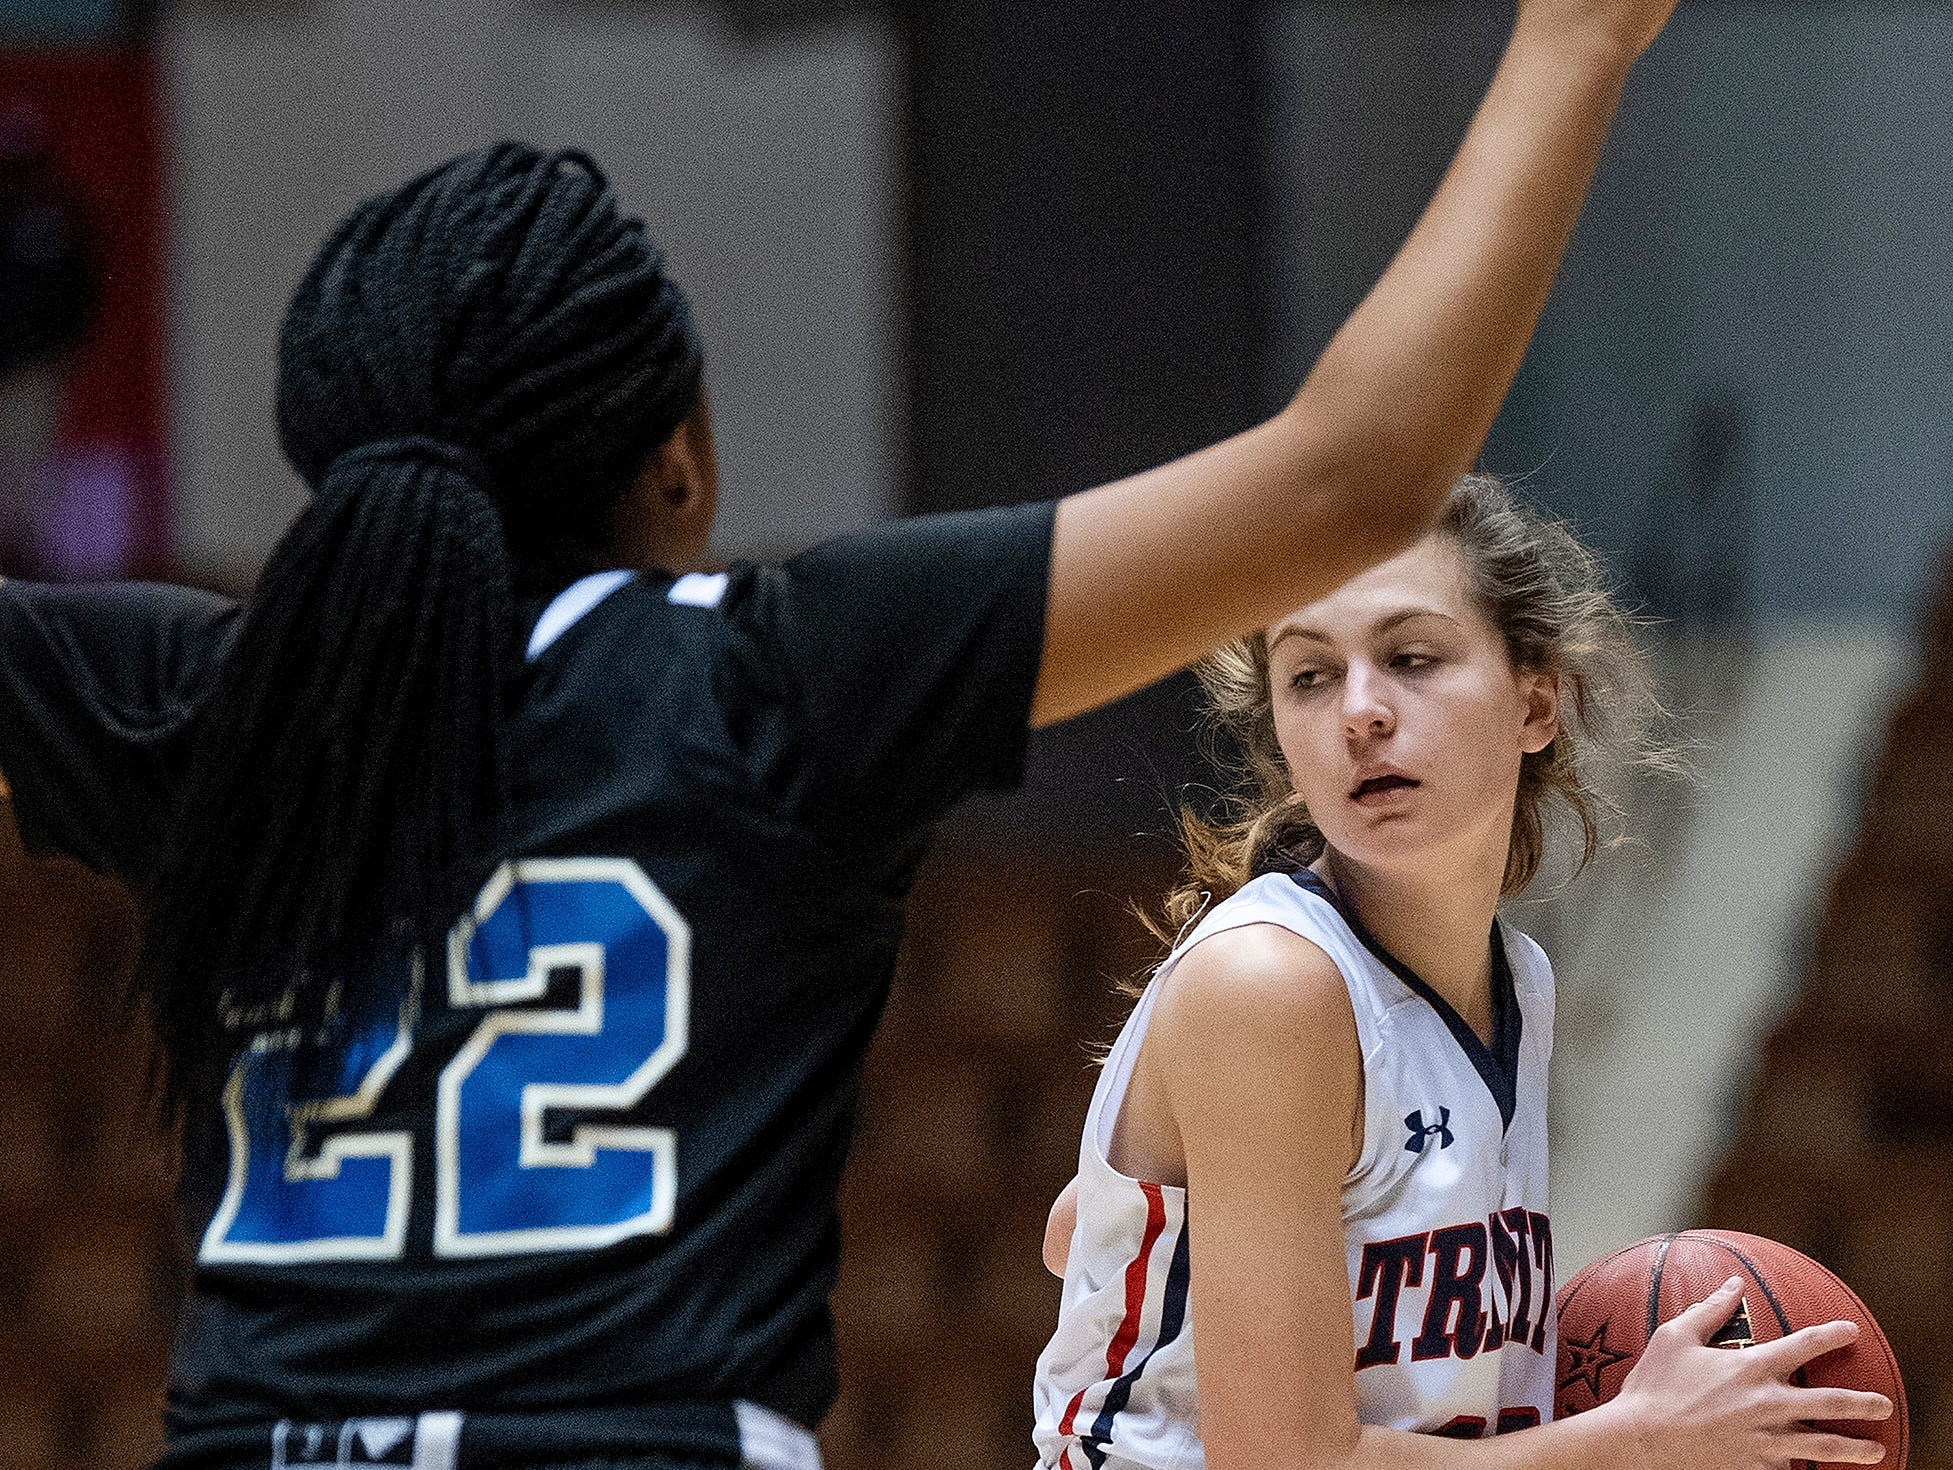 Trinity's Kenslee Harrison looks to pass against Childersburg's Keasia McKinney in AHSAA Regional action at Garrett Coliseum in Montgomery, Ala., on Monday February 18, 2019.